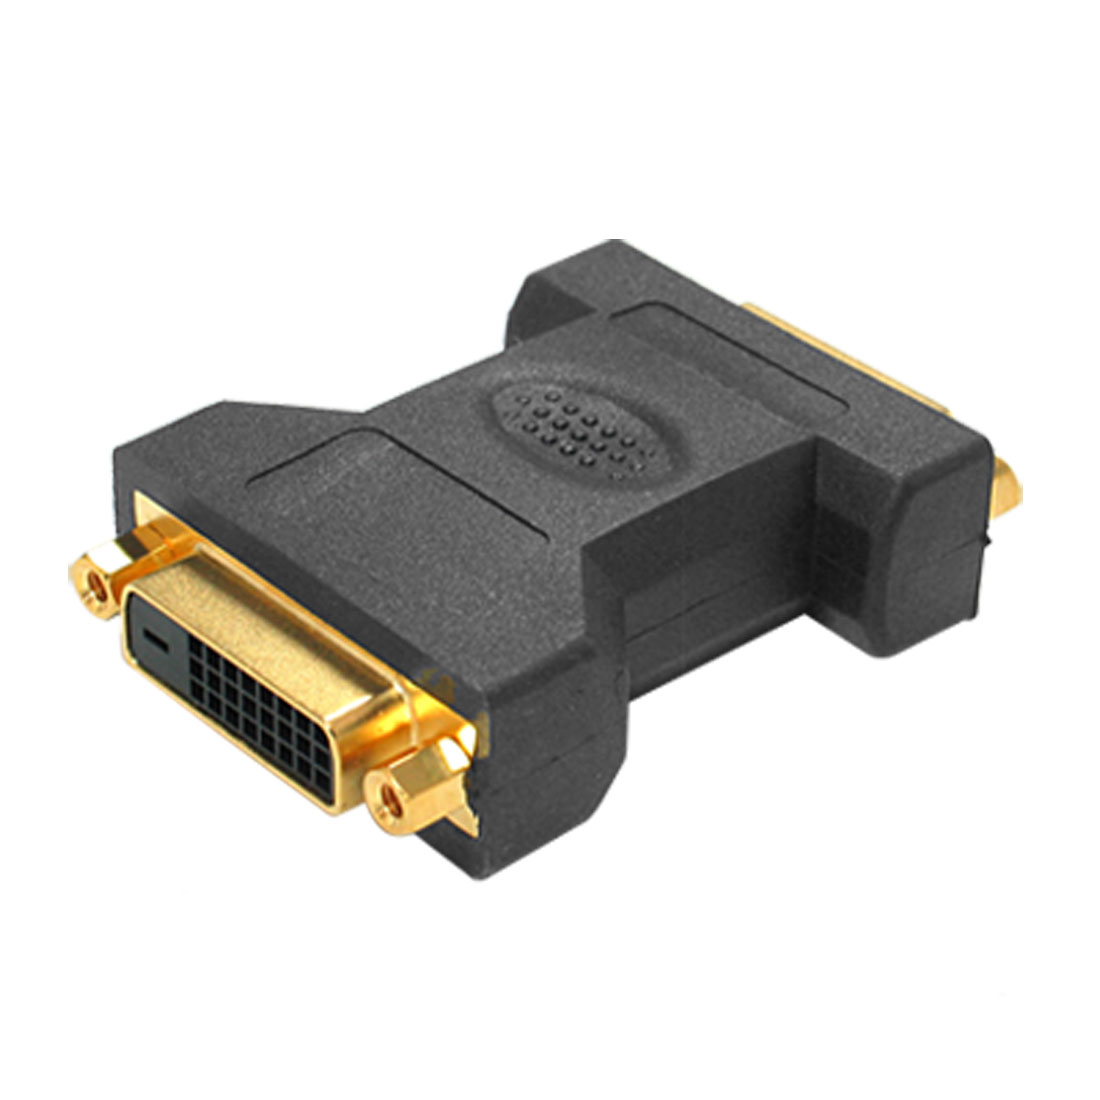 DVI-D to DVI-D Female HDTV TV PC Adapter Converter